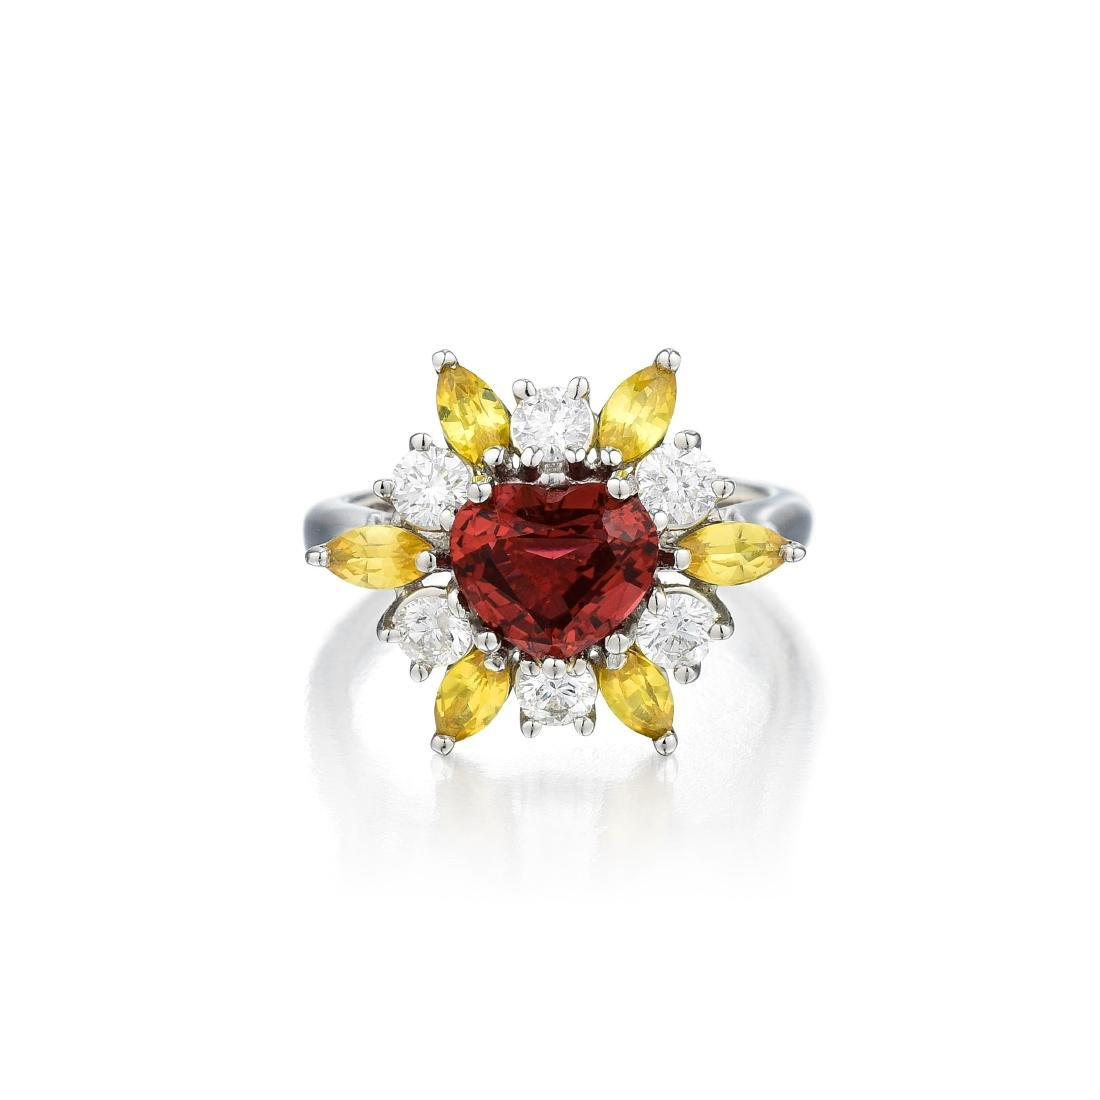 A Platinum Spinel Yellow Sapphire and Diamond Ring